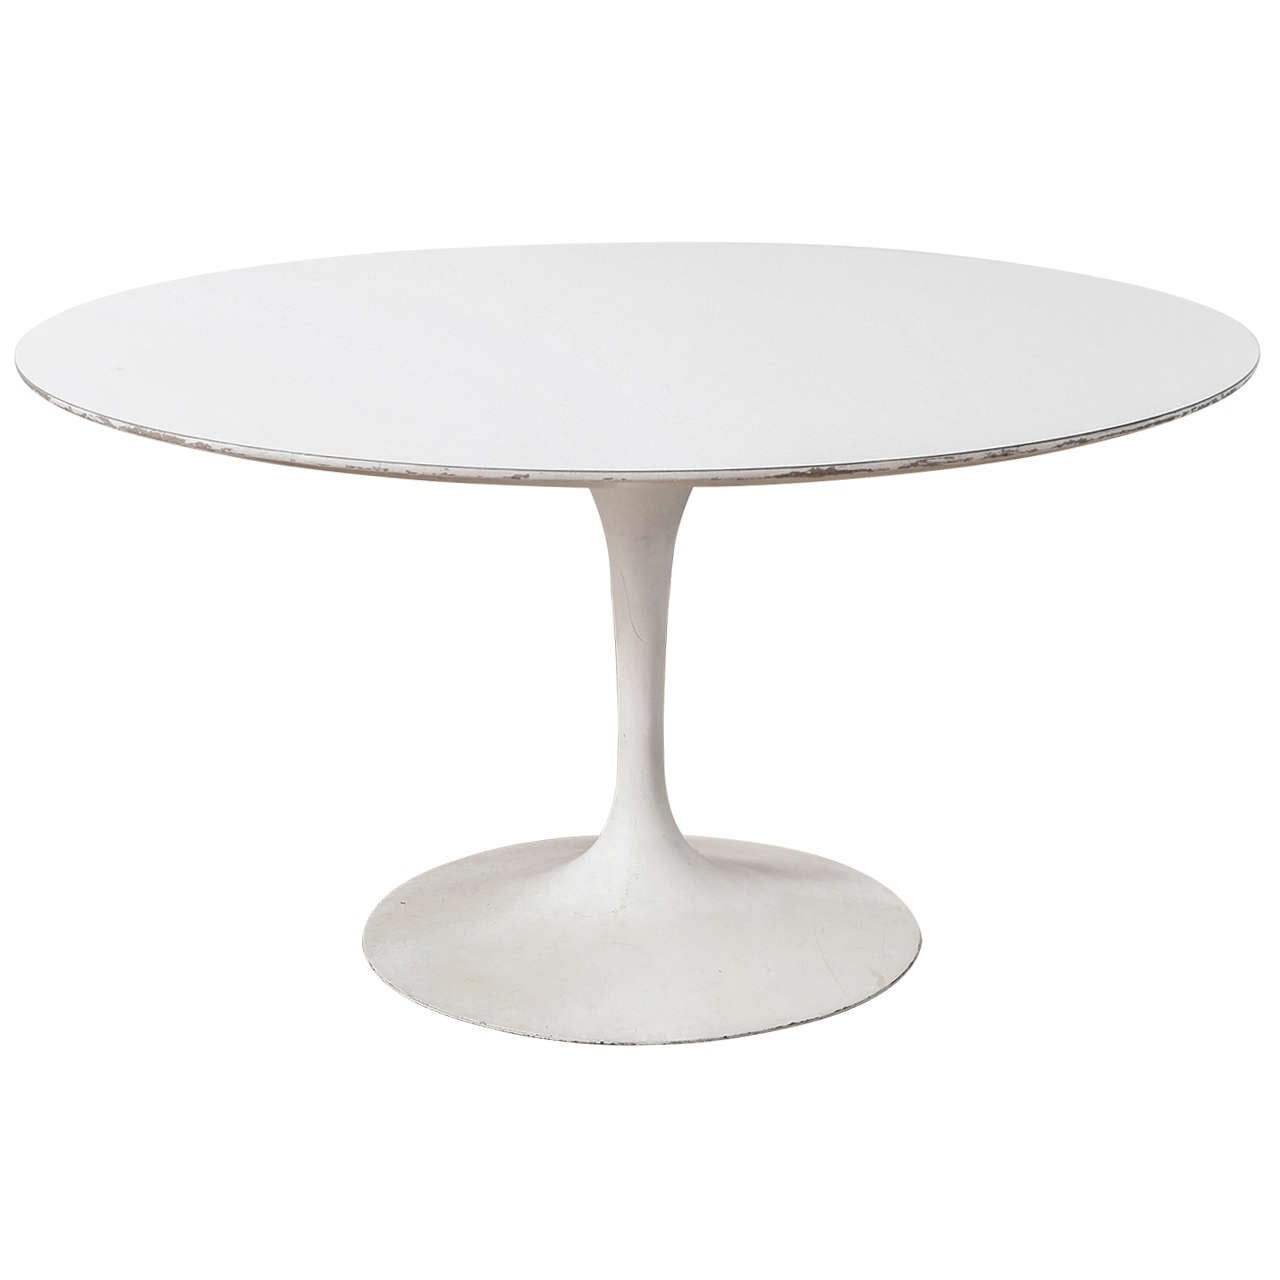 Distressed Saarinen for Knoll Tulip Table